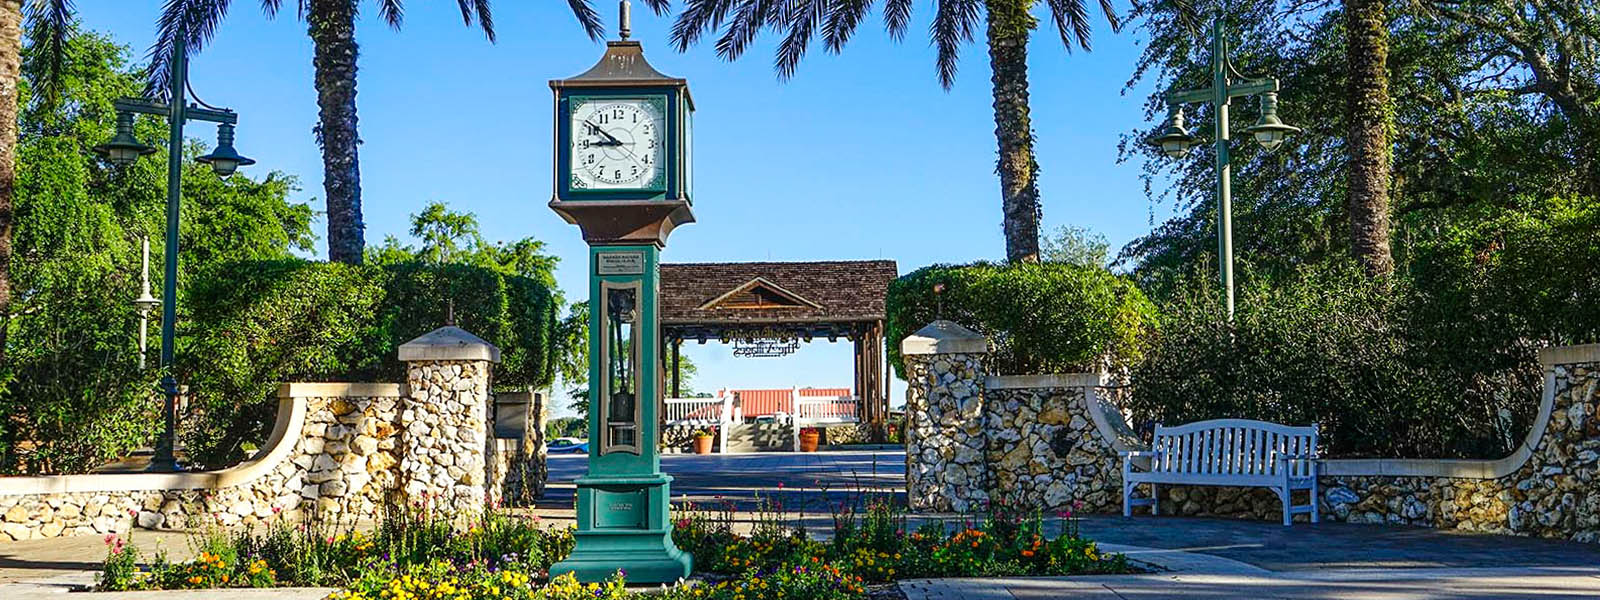 A clock in the center of a stone courtyard in The Villages Florida